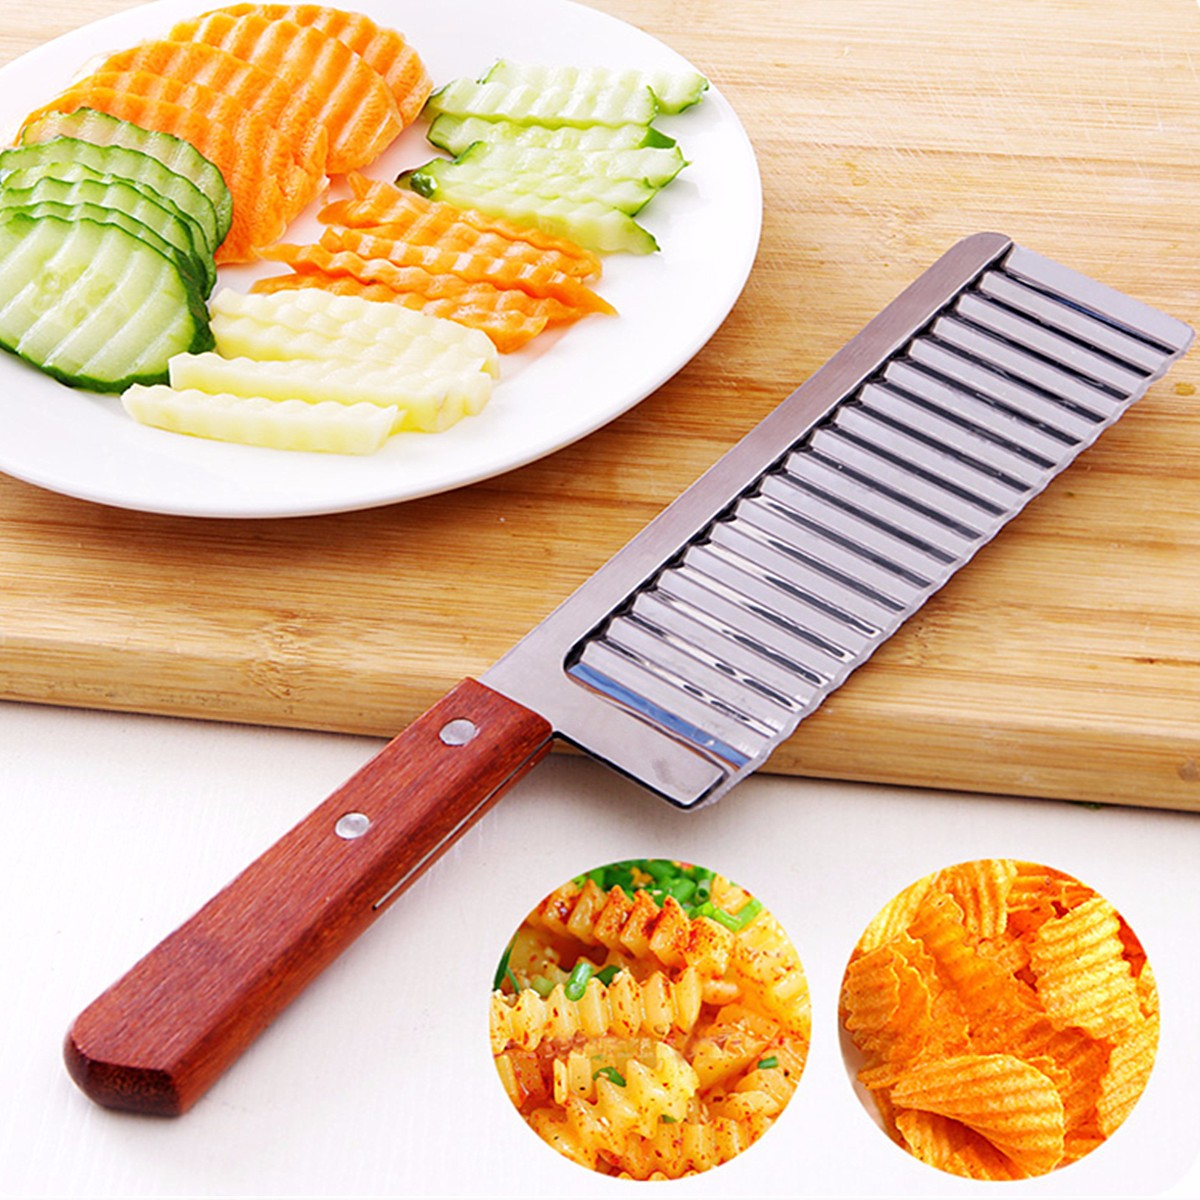 26.5cm/10.43'' Stainless Steel Crinkle Cut Knife Potato Chip Cutter With Wavy Blade Slicer